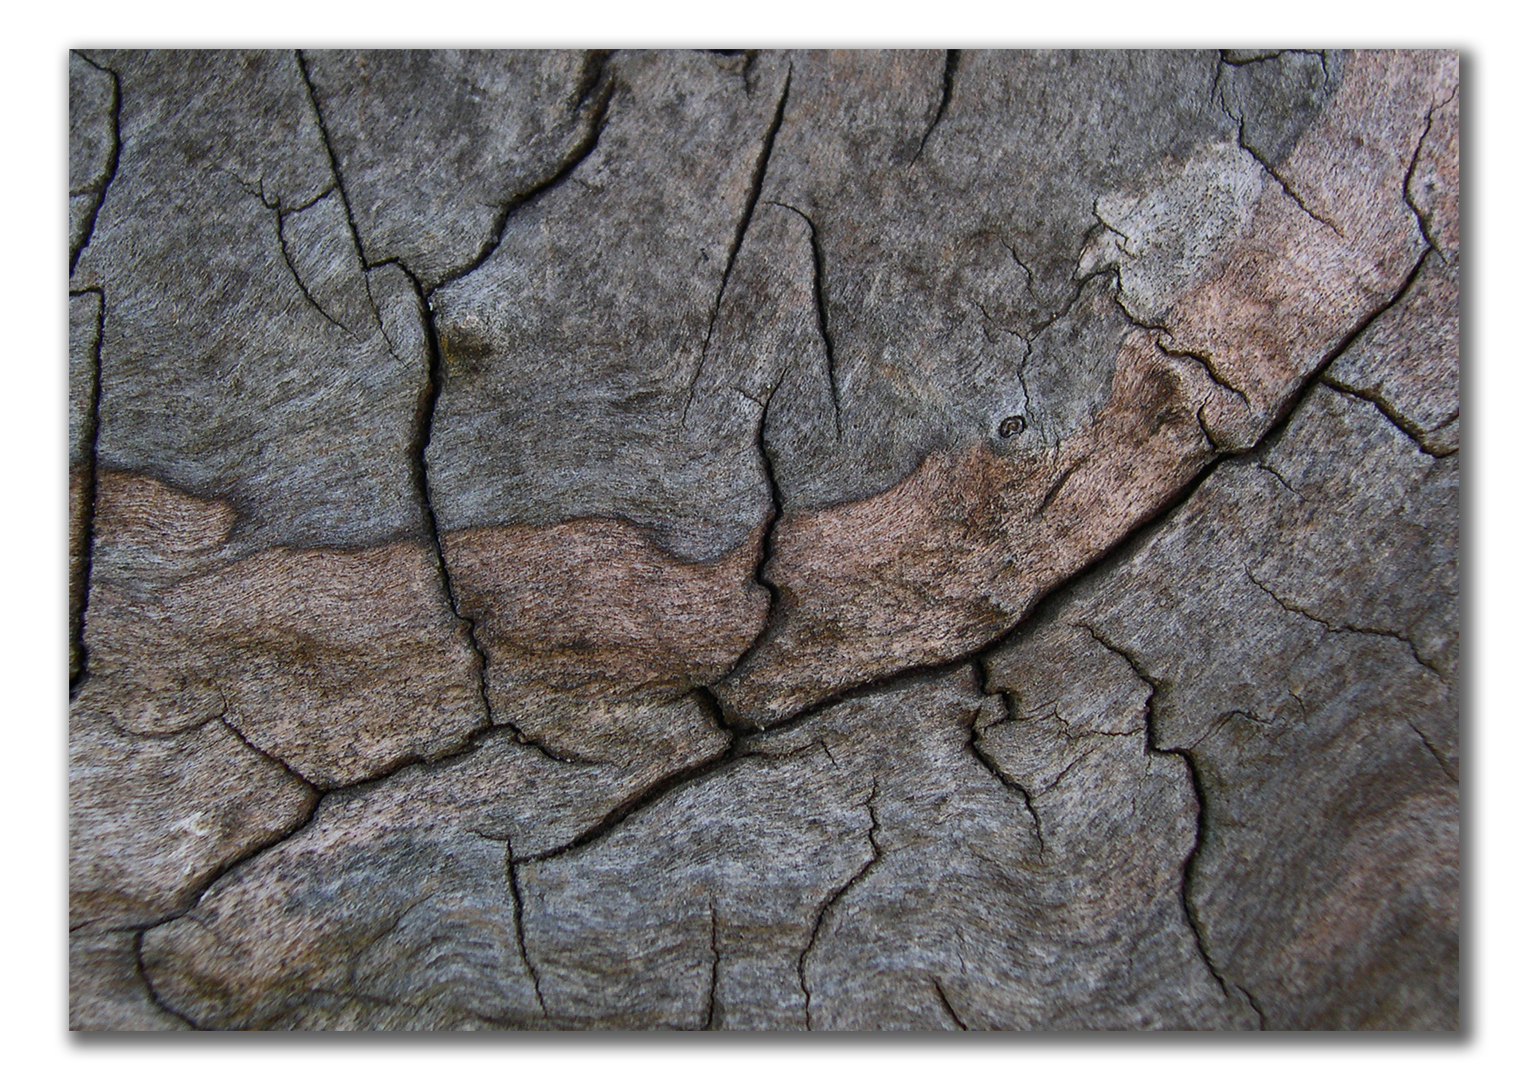 patterned and cracked driftwood